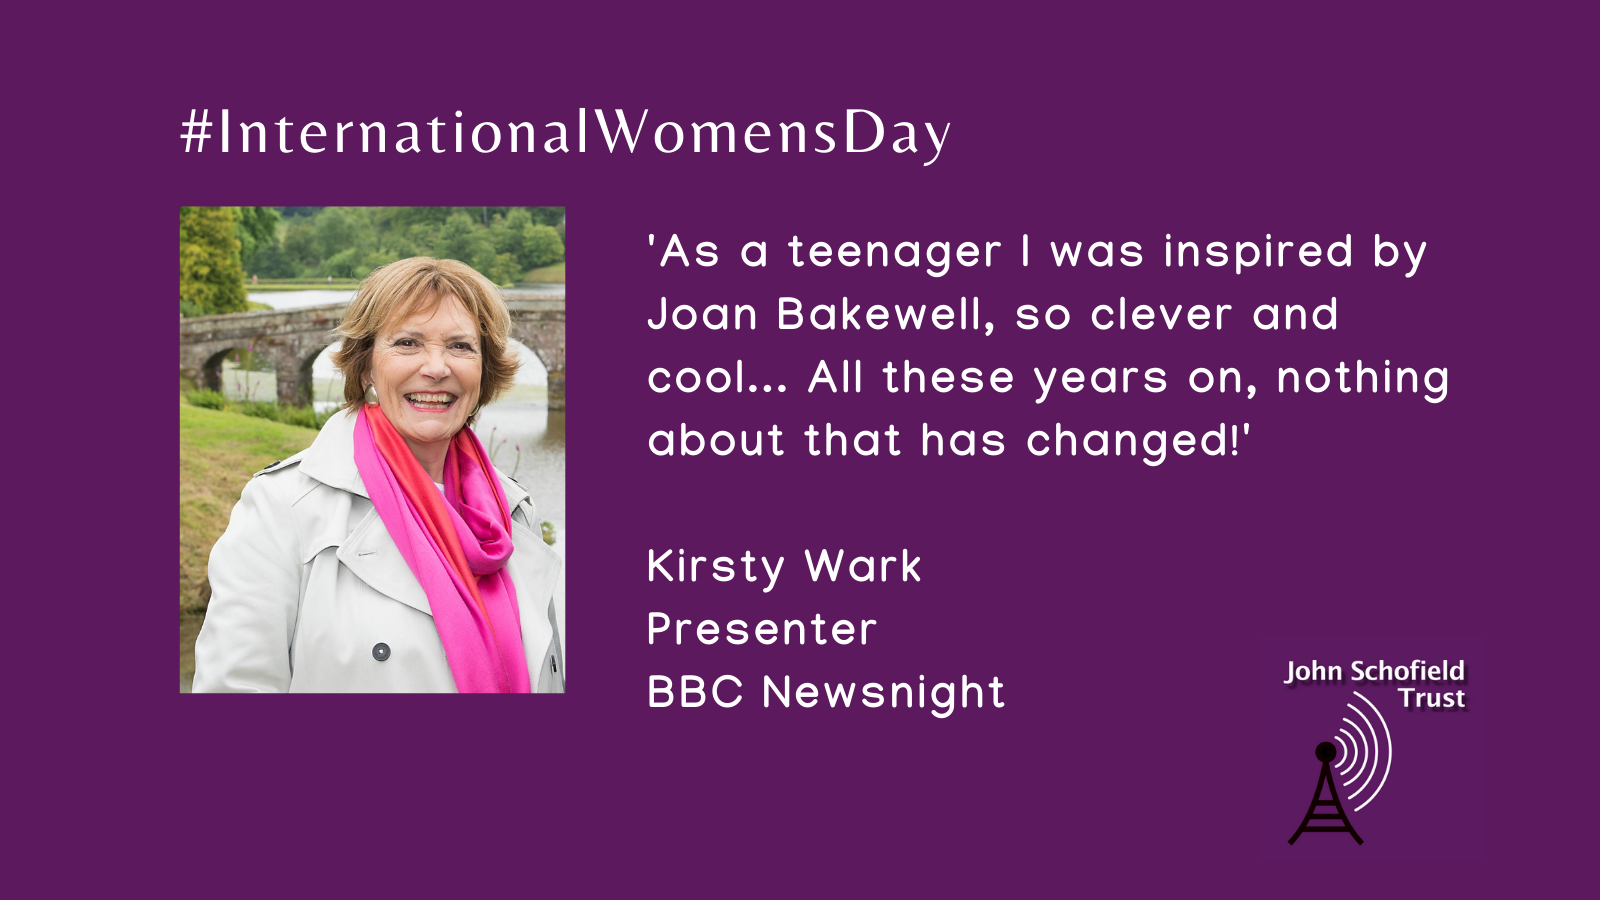 Kirsty Wark's inspirational woman for #IWD